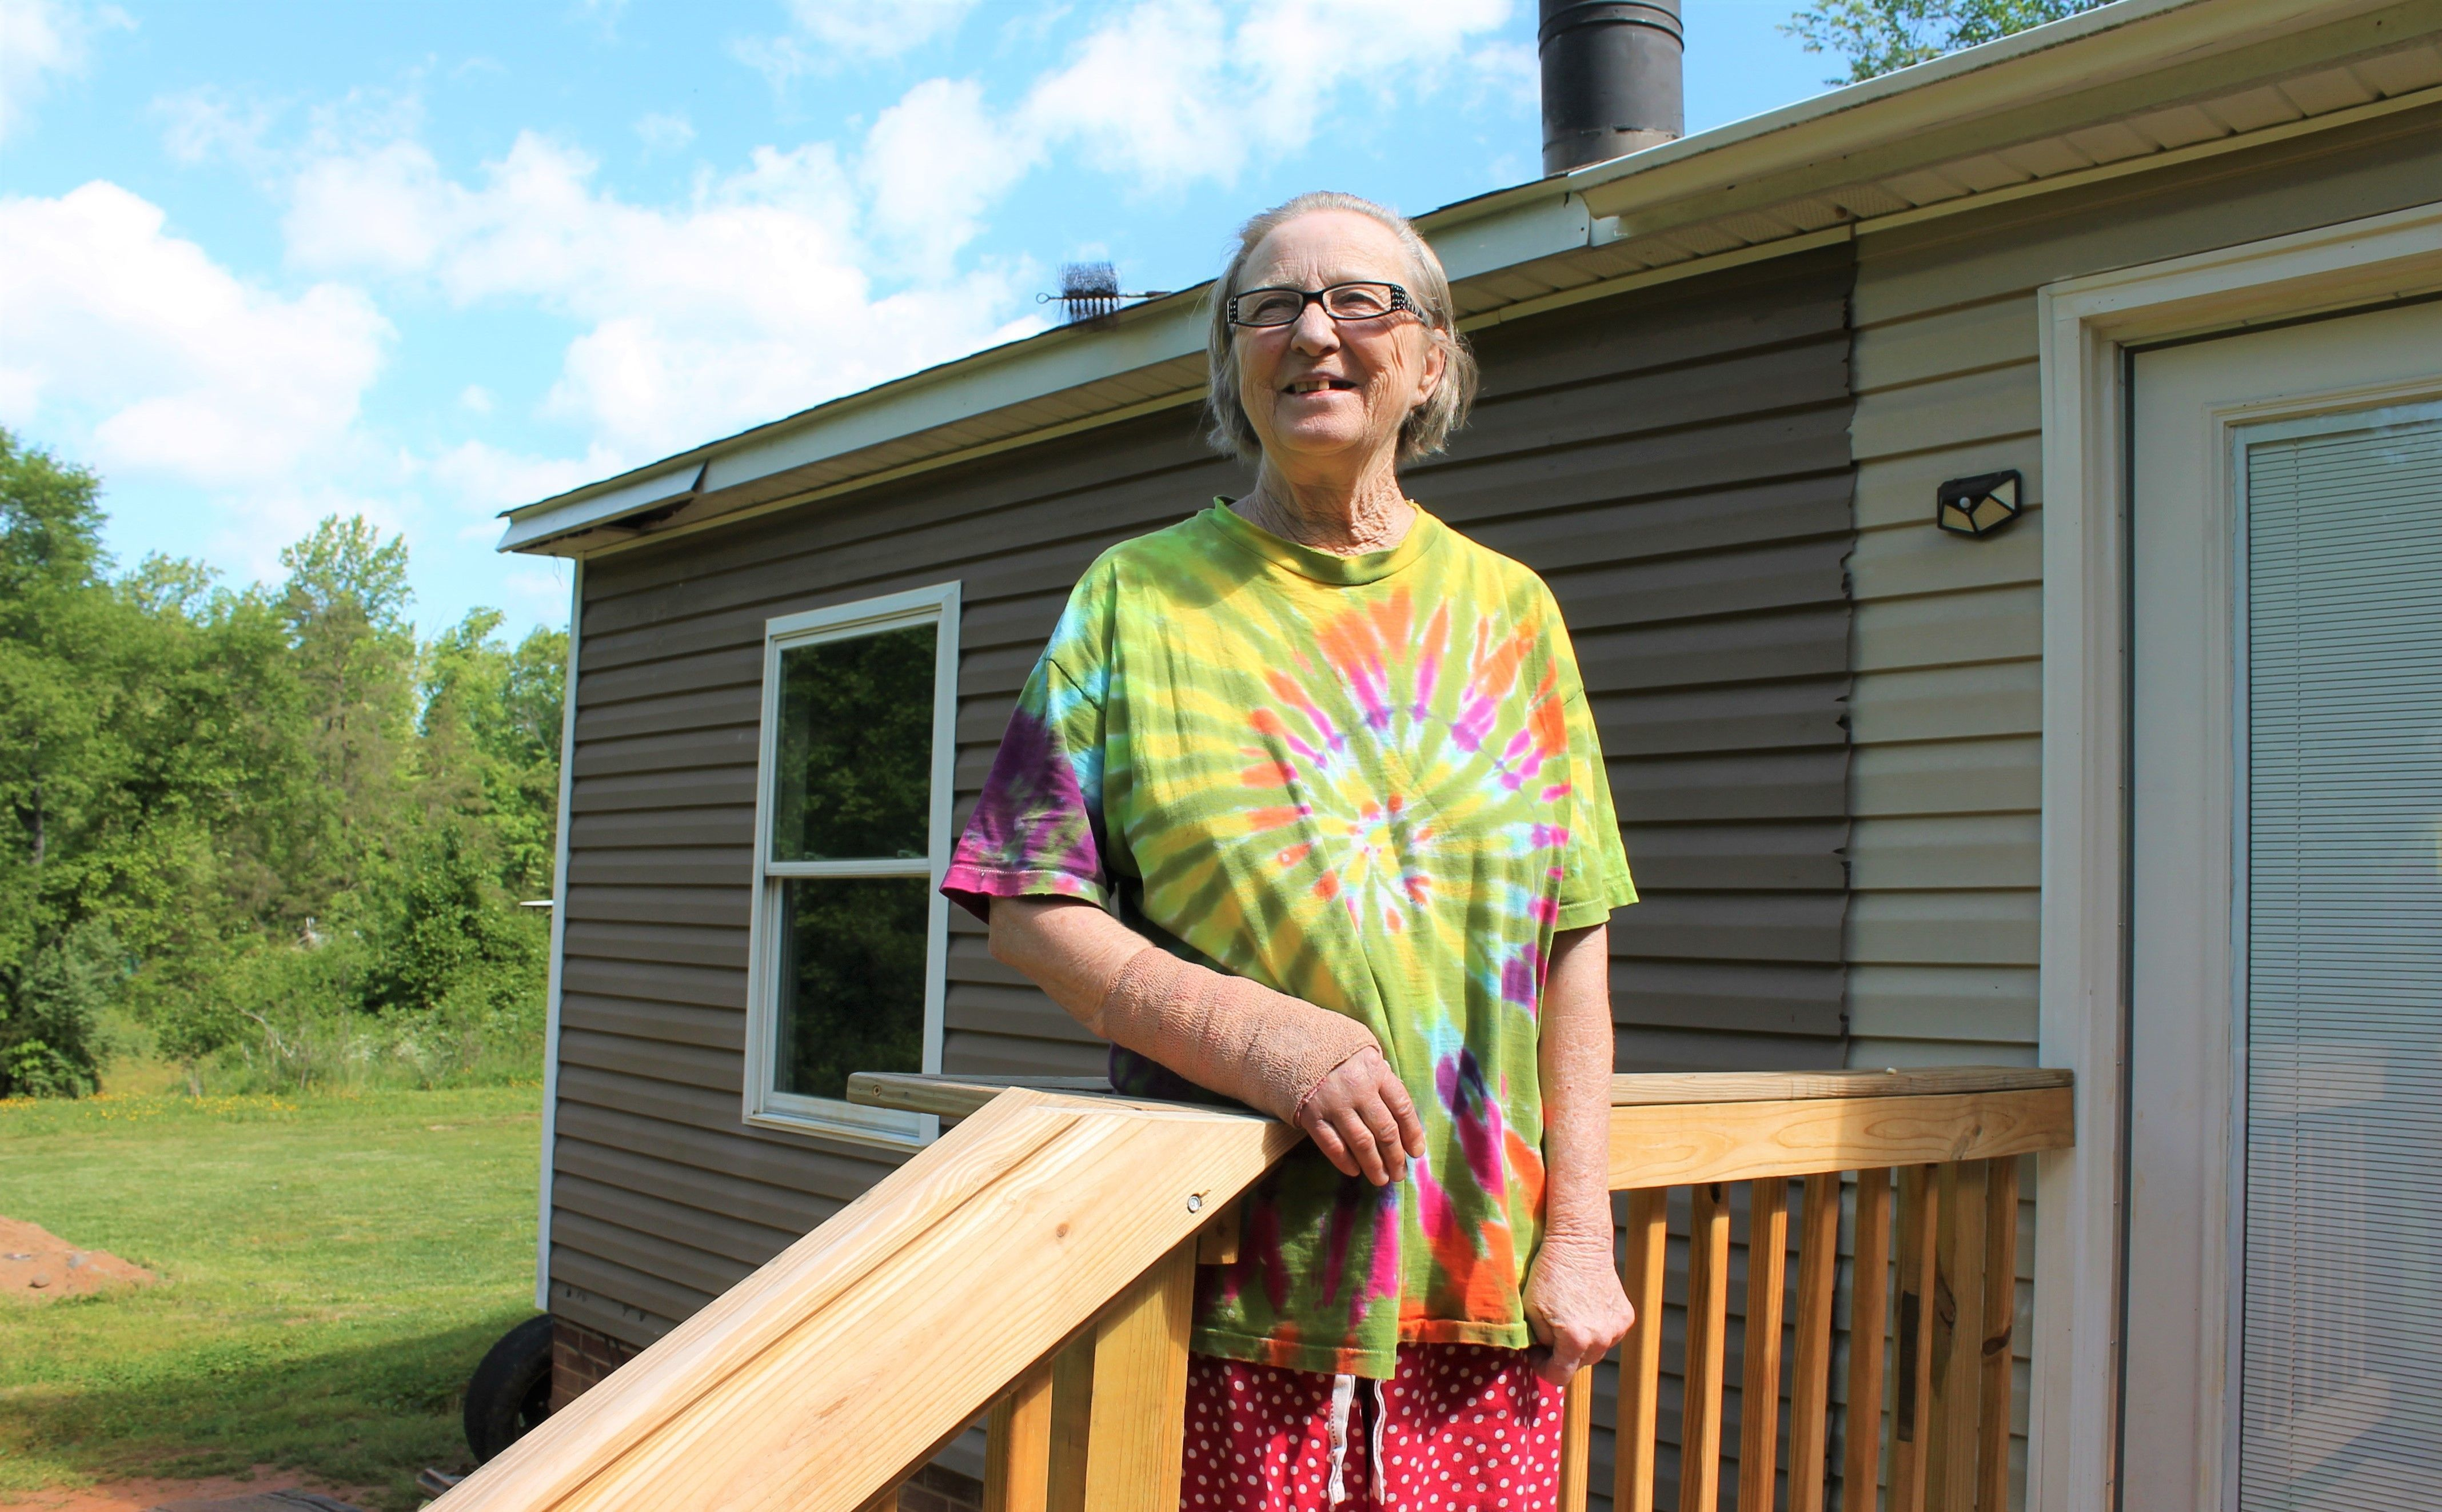 Elderly woman standing on a porch.